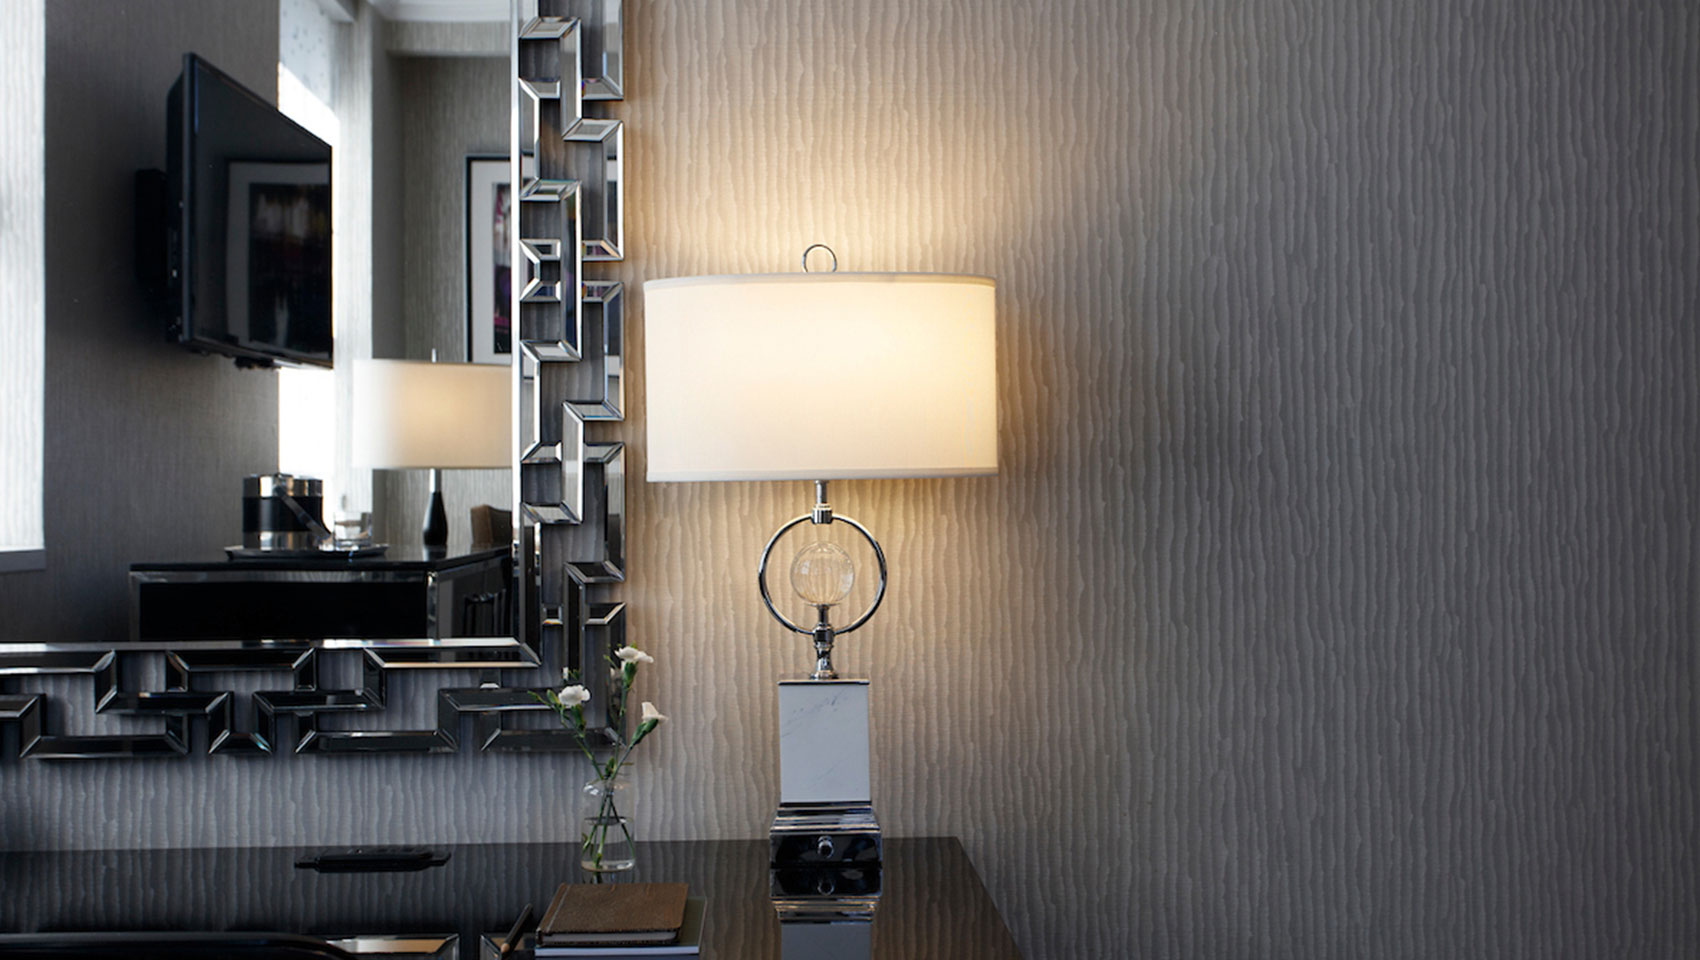 Kimpton Muse Hotel guestroom desk with lamp and mirror on the wall